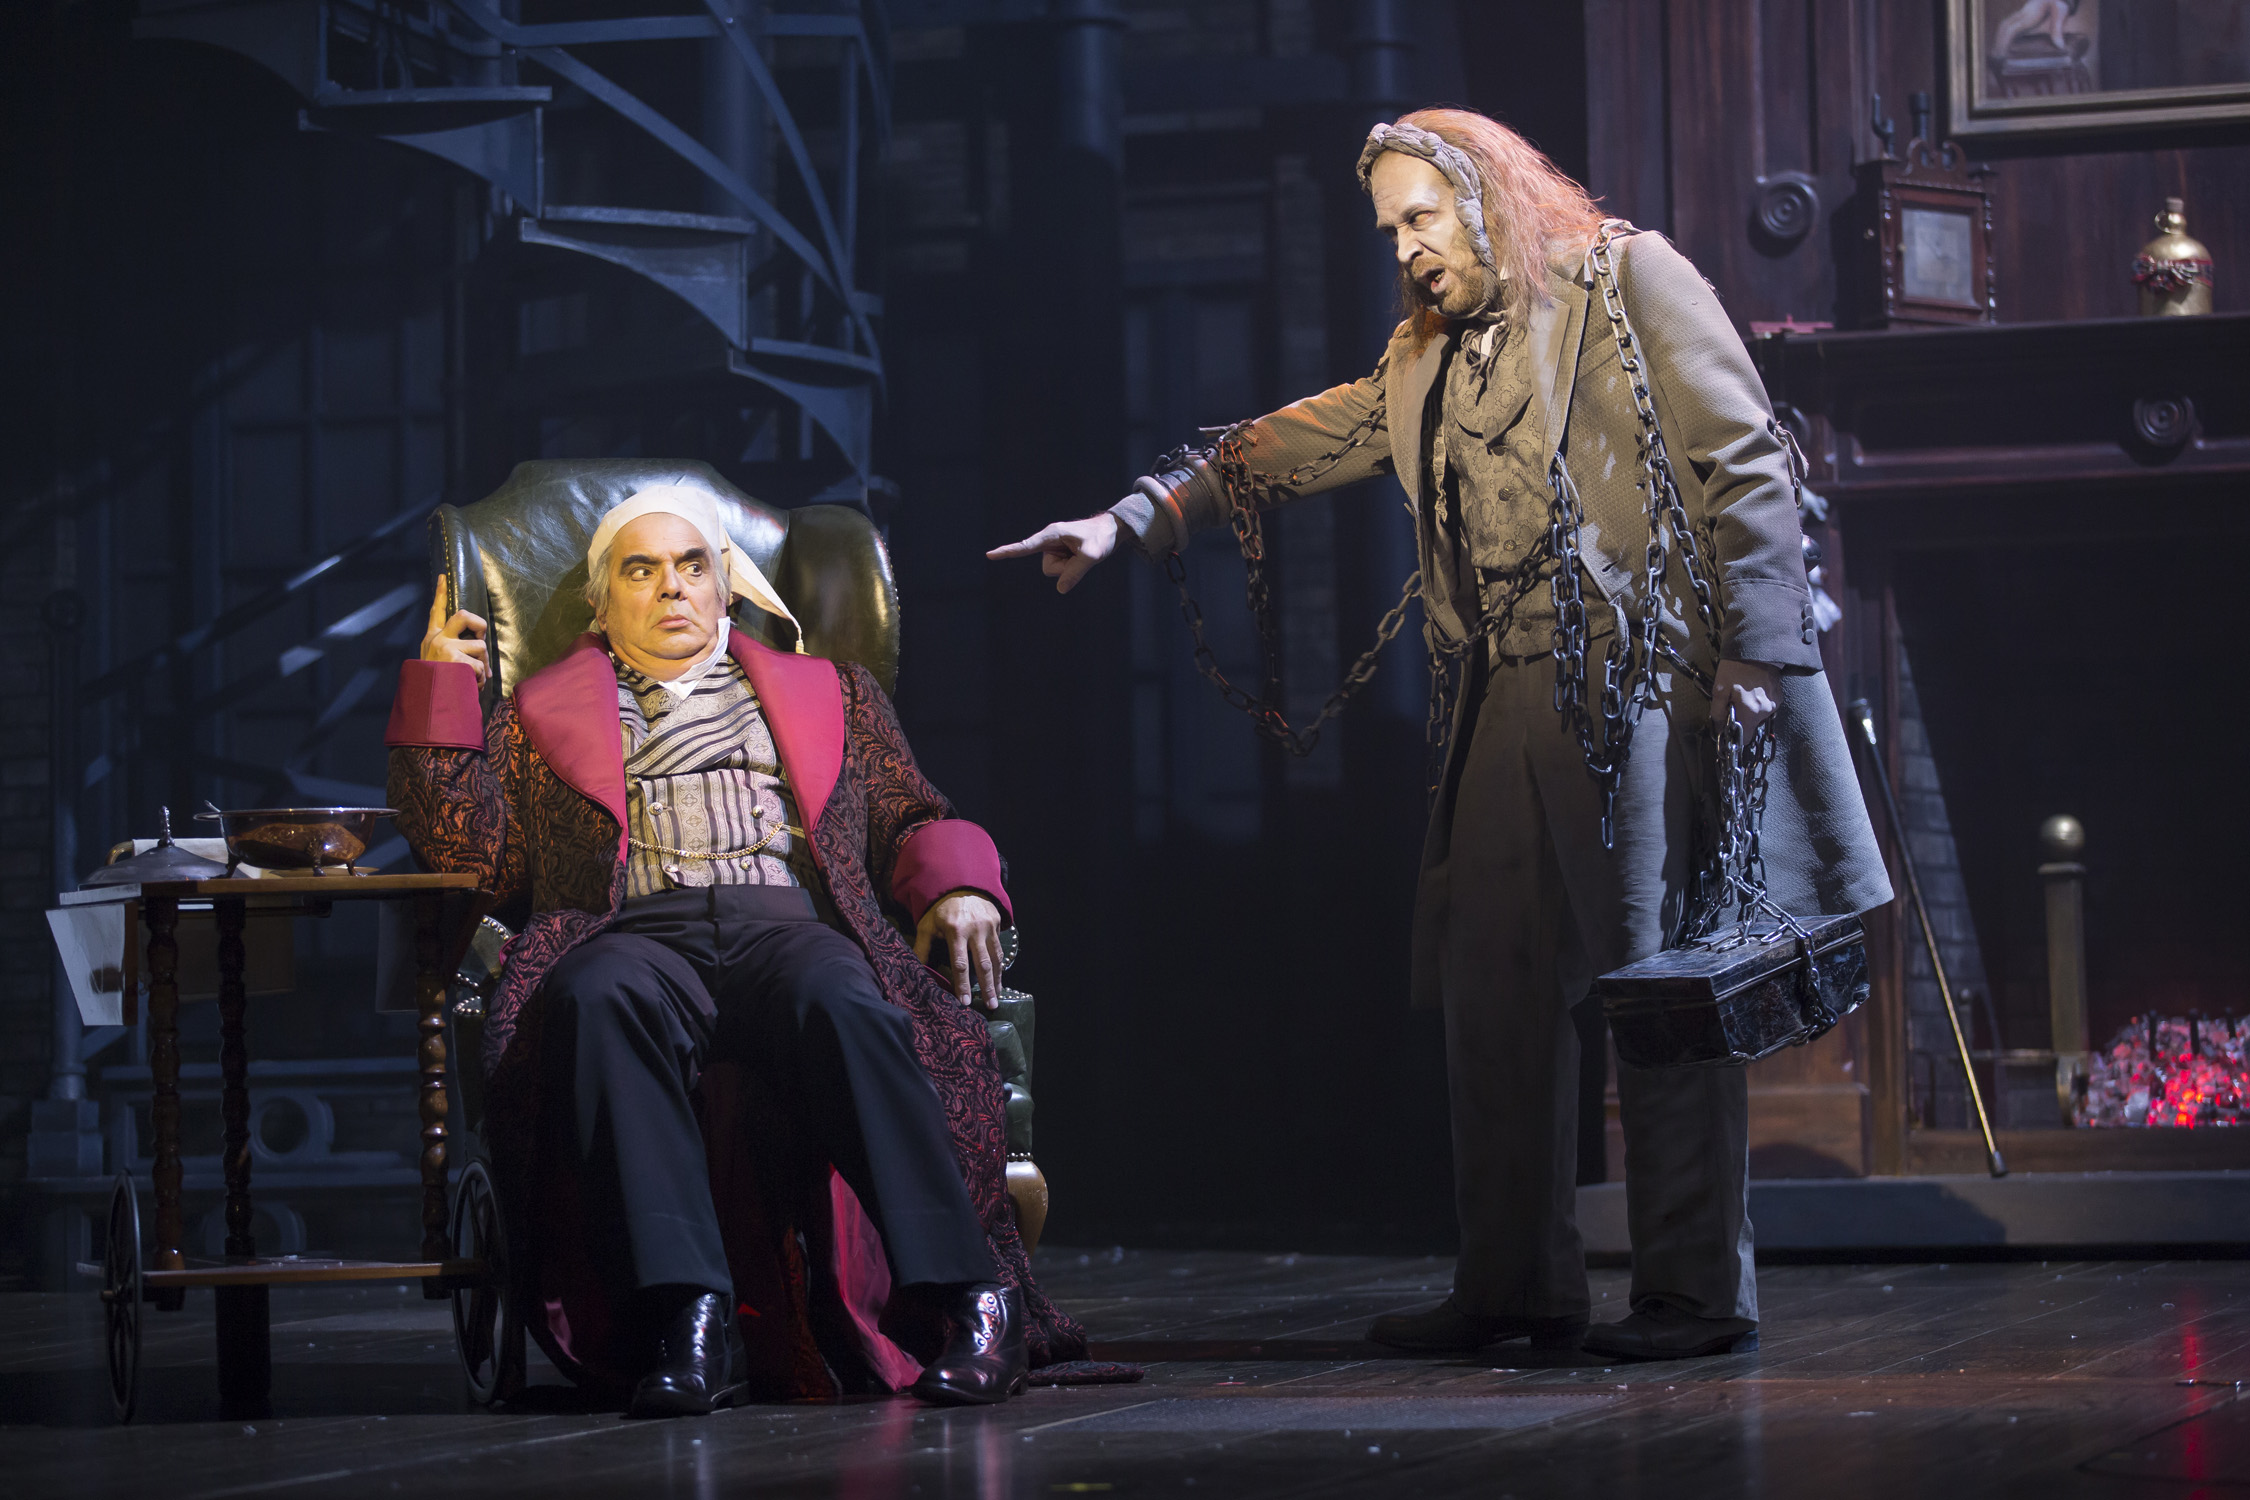 Bah humbug! Scrooge returns to 'A Christmas Carol' at Ford's